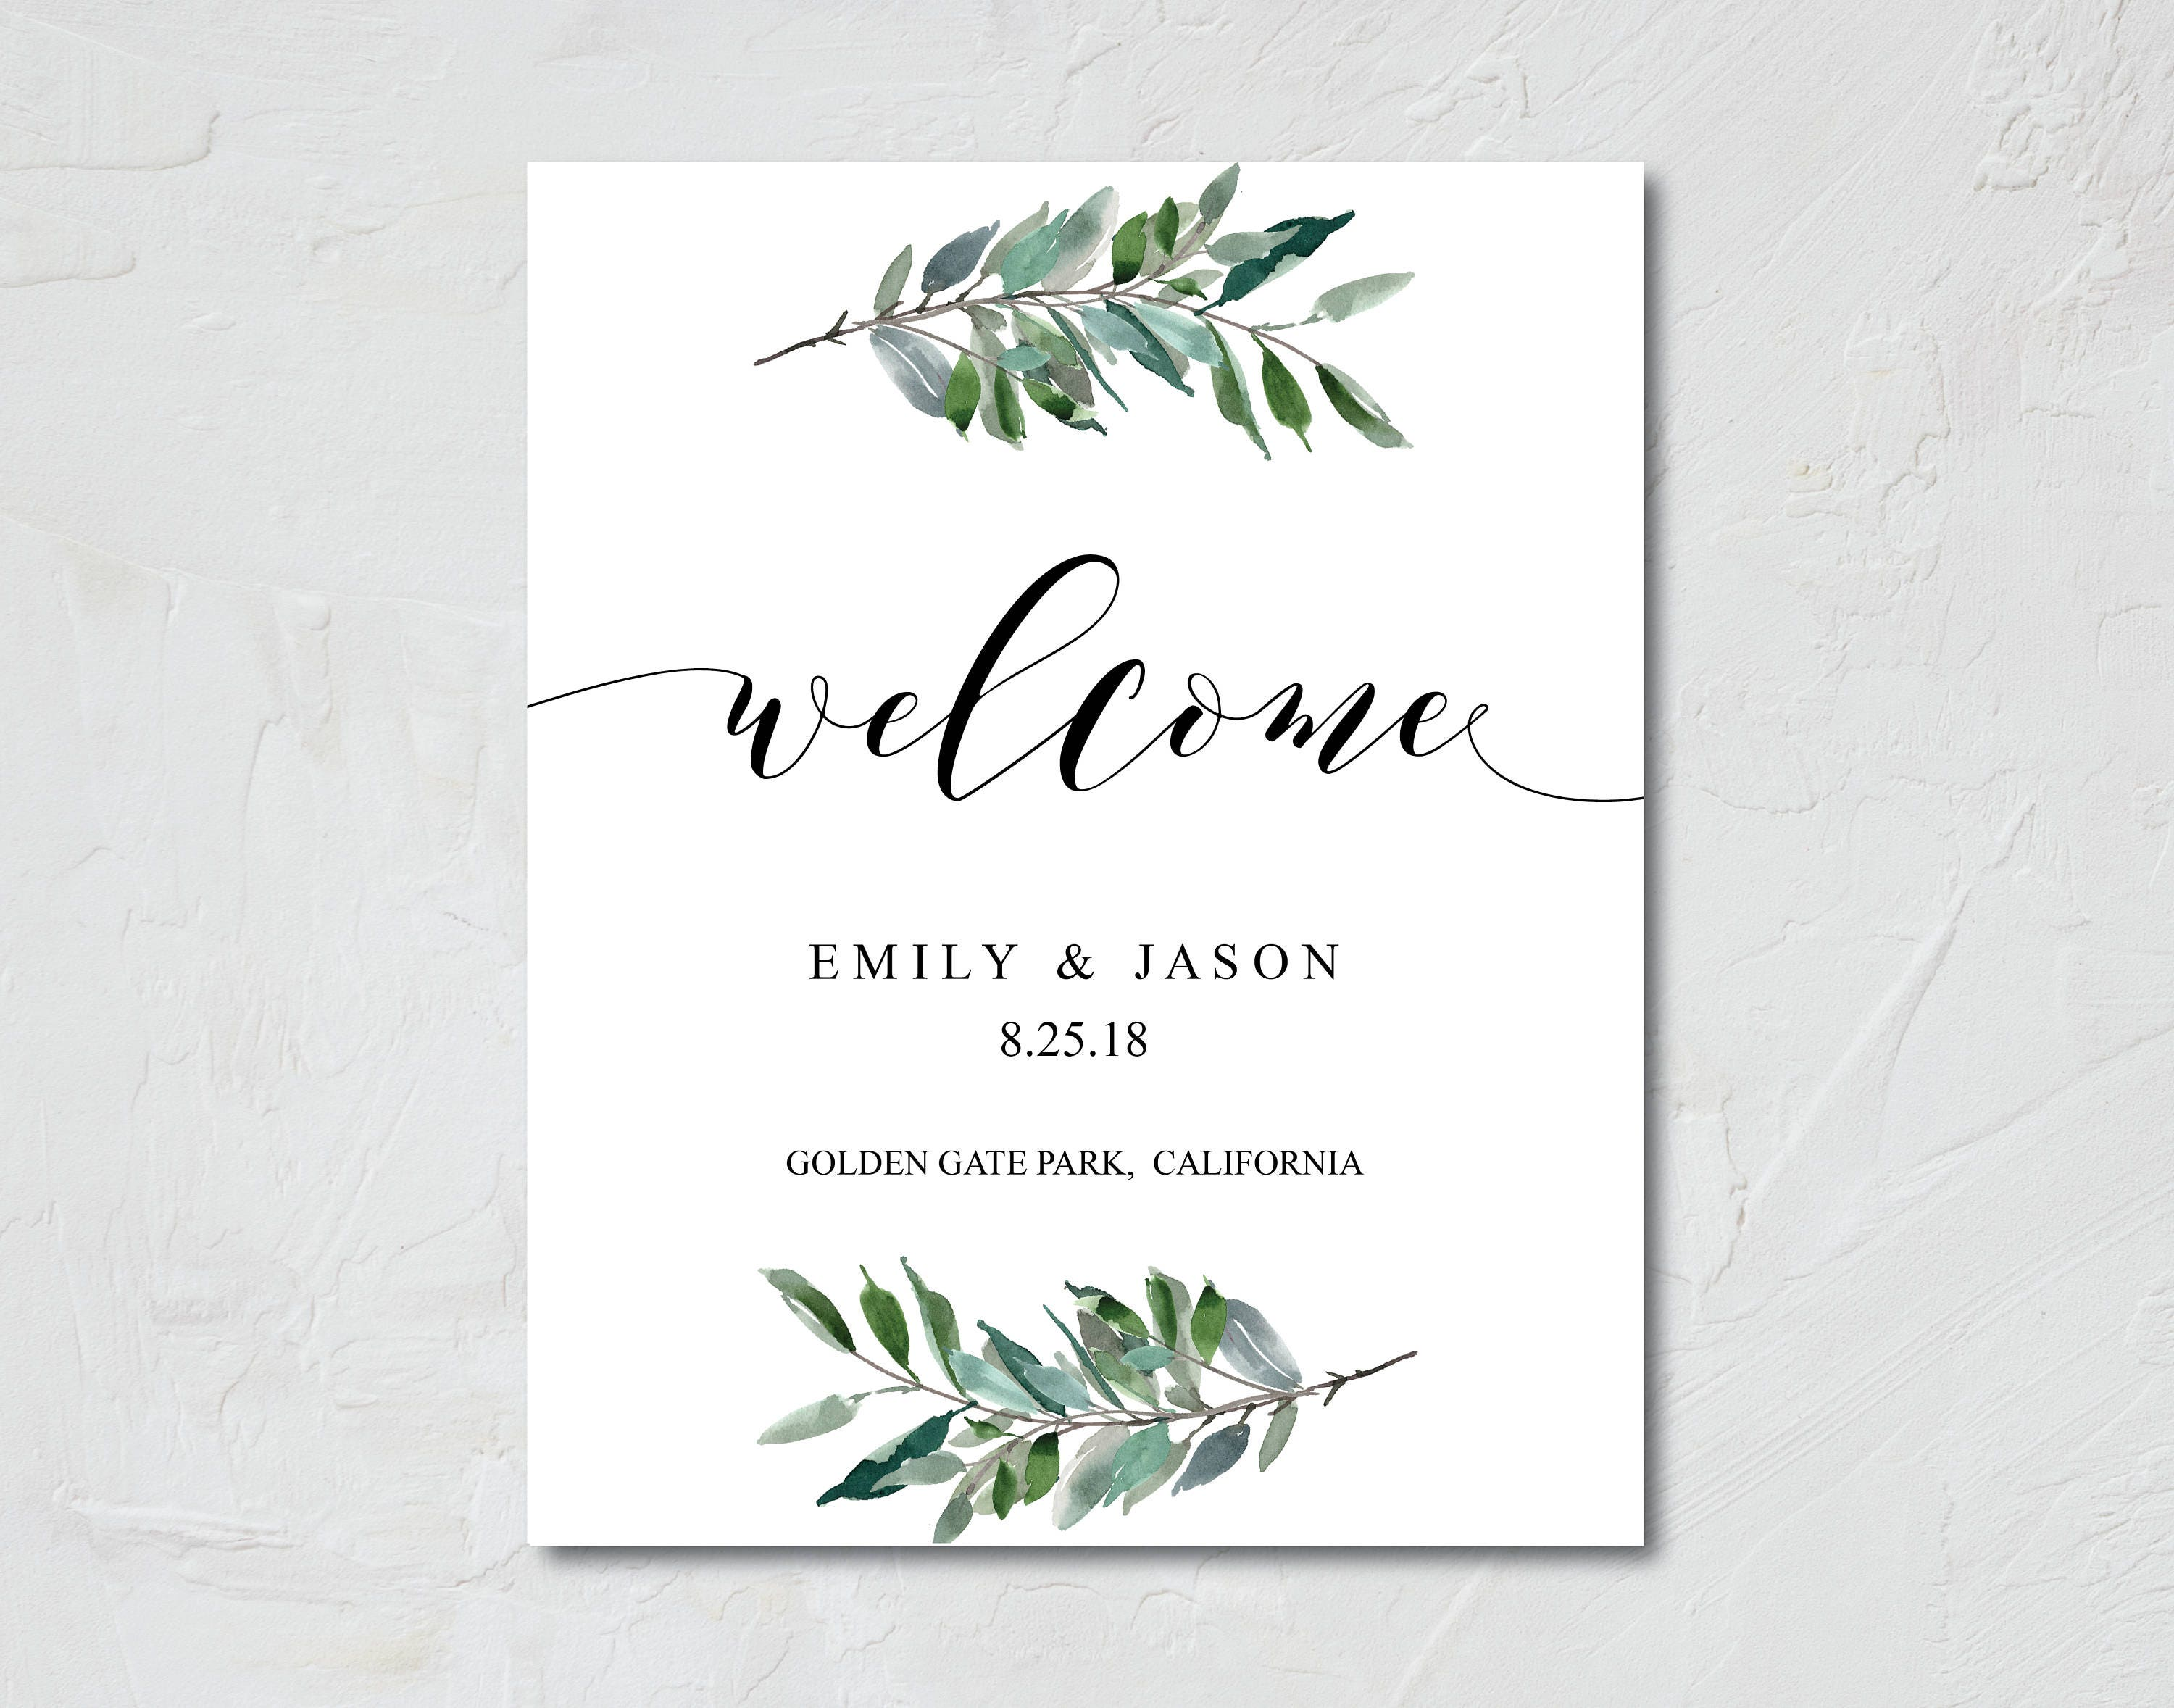 html welcome page template - greenery wedding greenery wedding welcome sign wedding